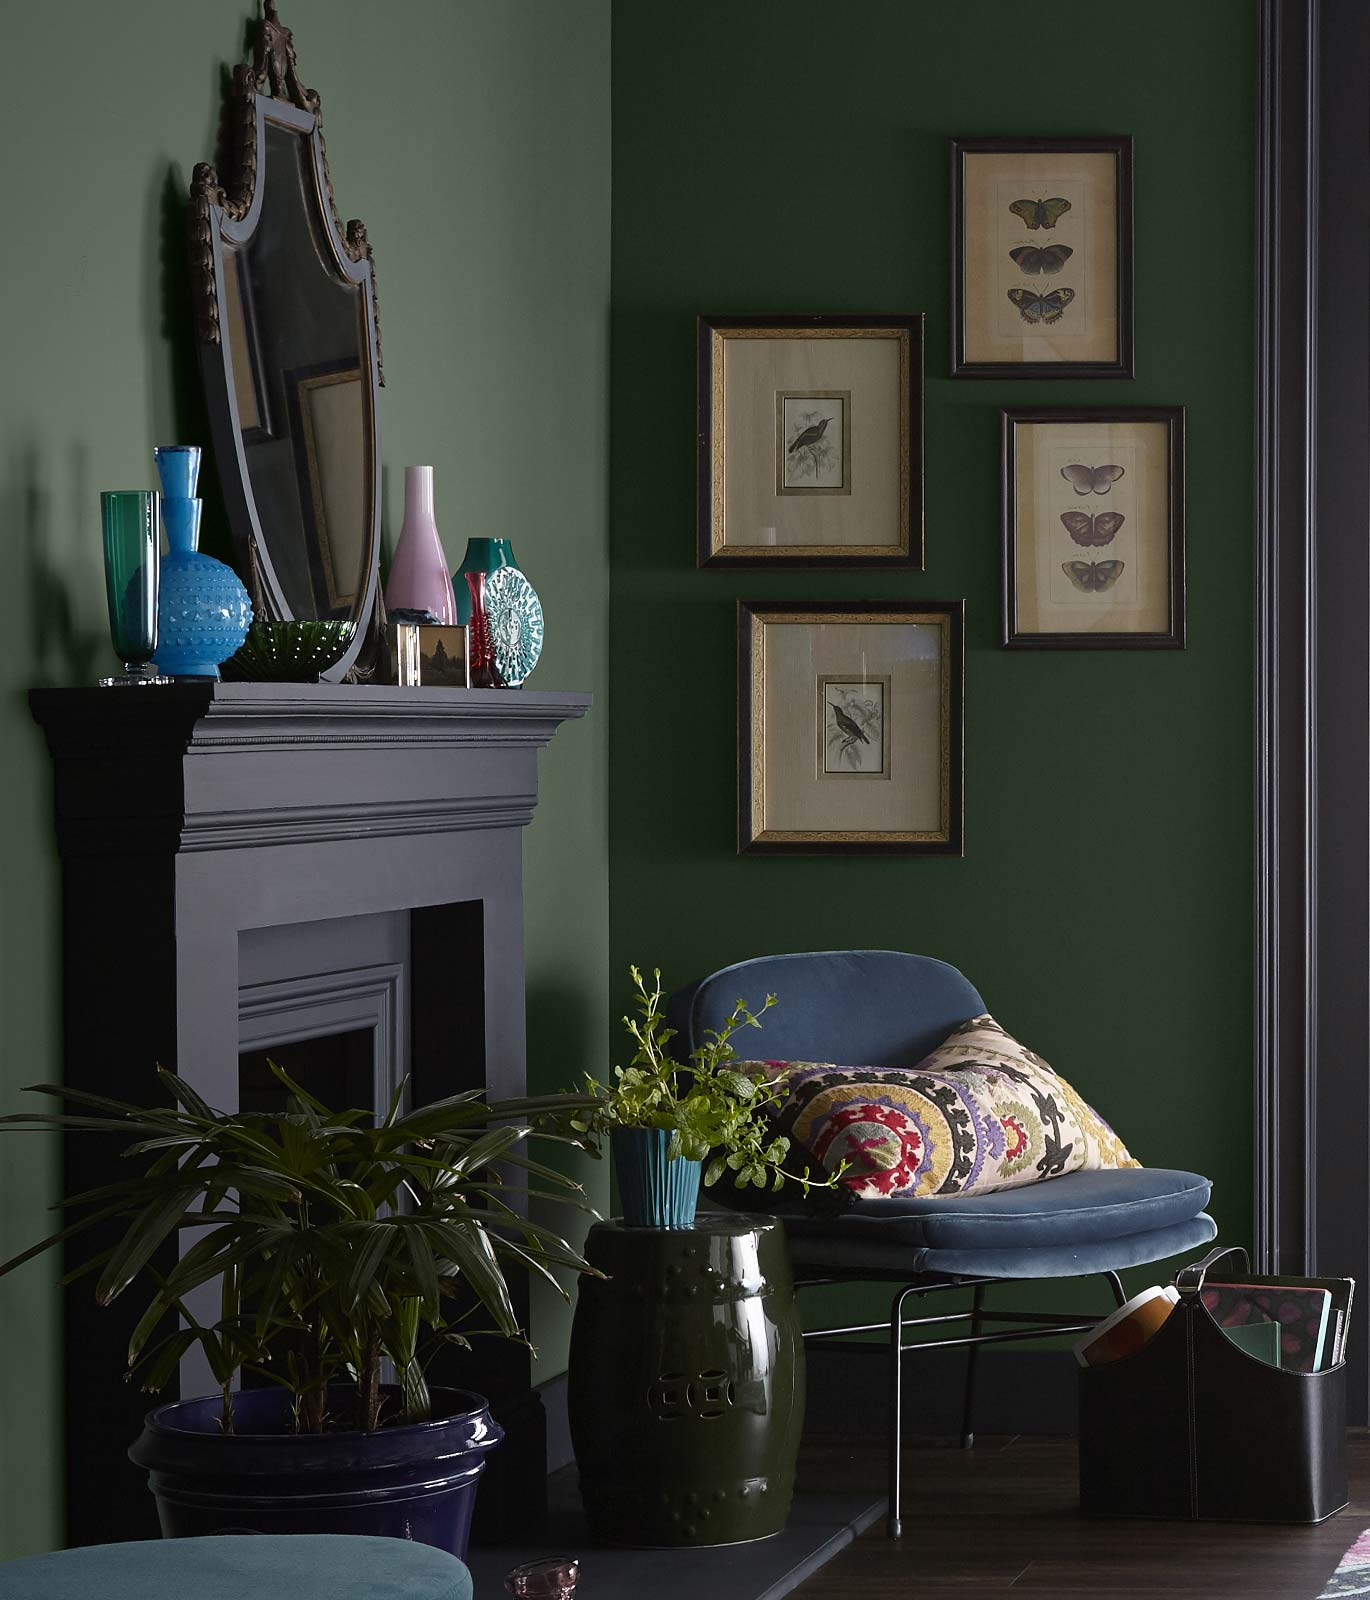 A quiet corner of a living room showing a black painted fireplace, a velvety chair in a blue color. The walls of the room are painted in a dark green color.